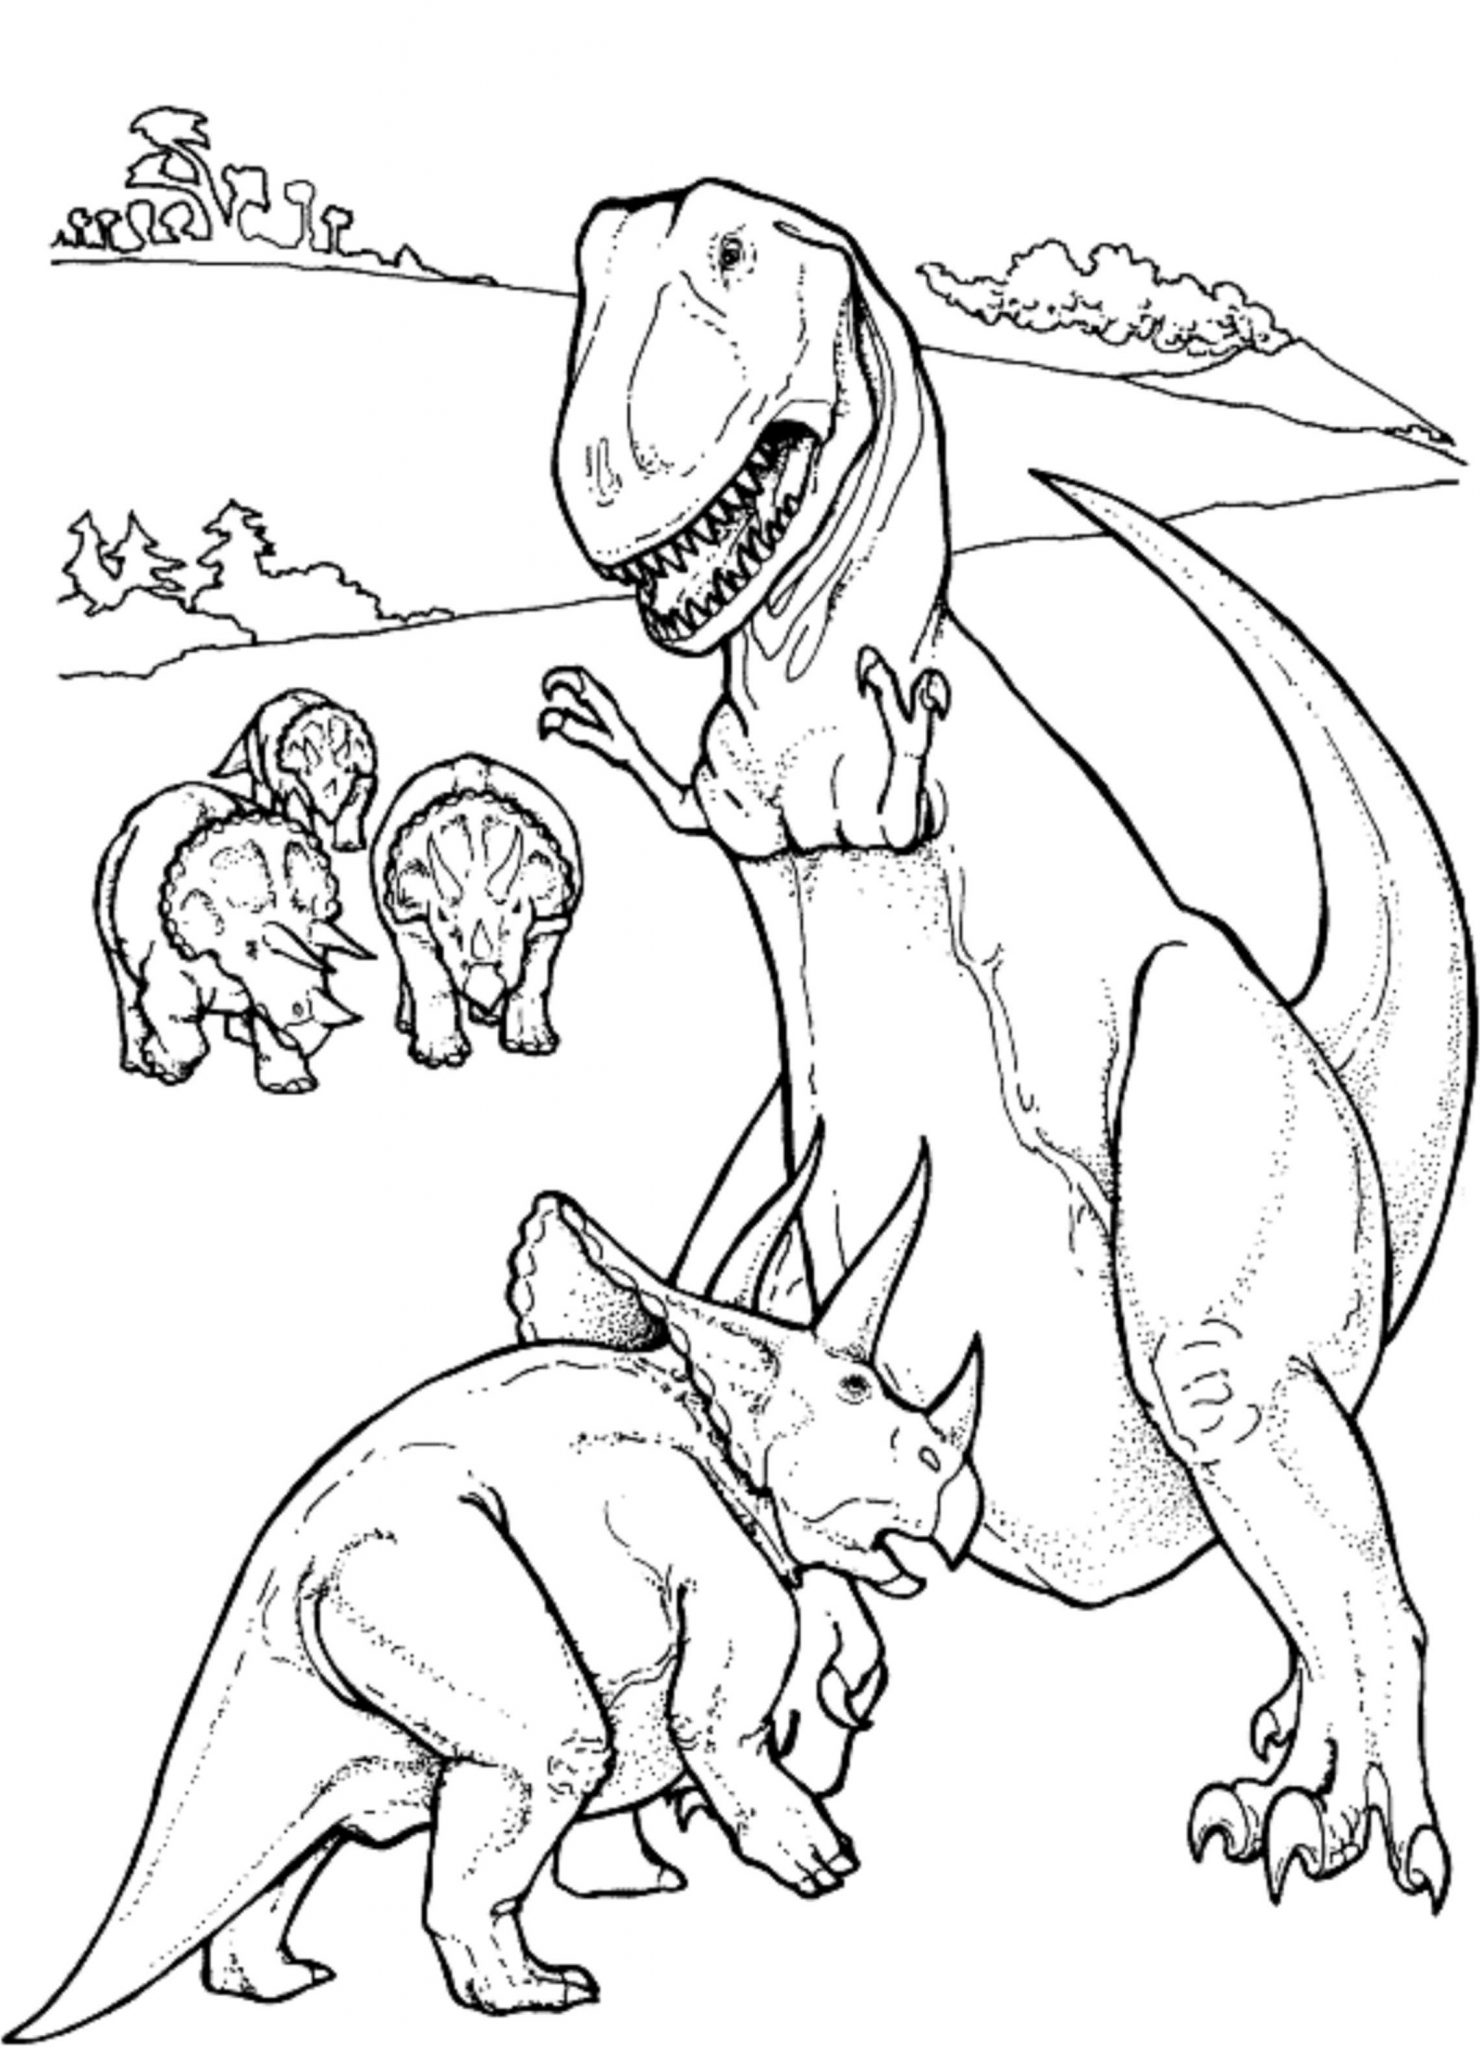 Dinosaur T Rex Coloring Pages For Kids Best Apps For Kids